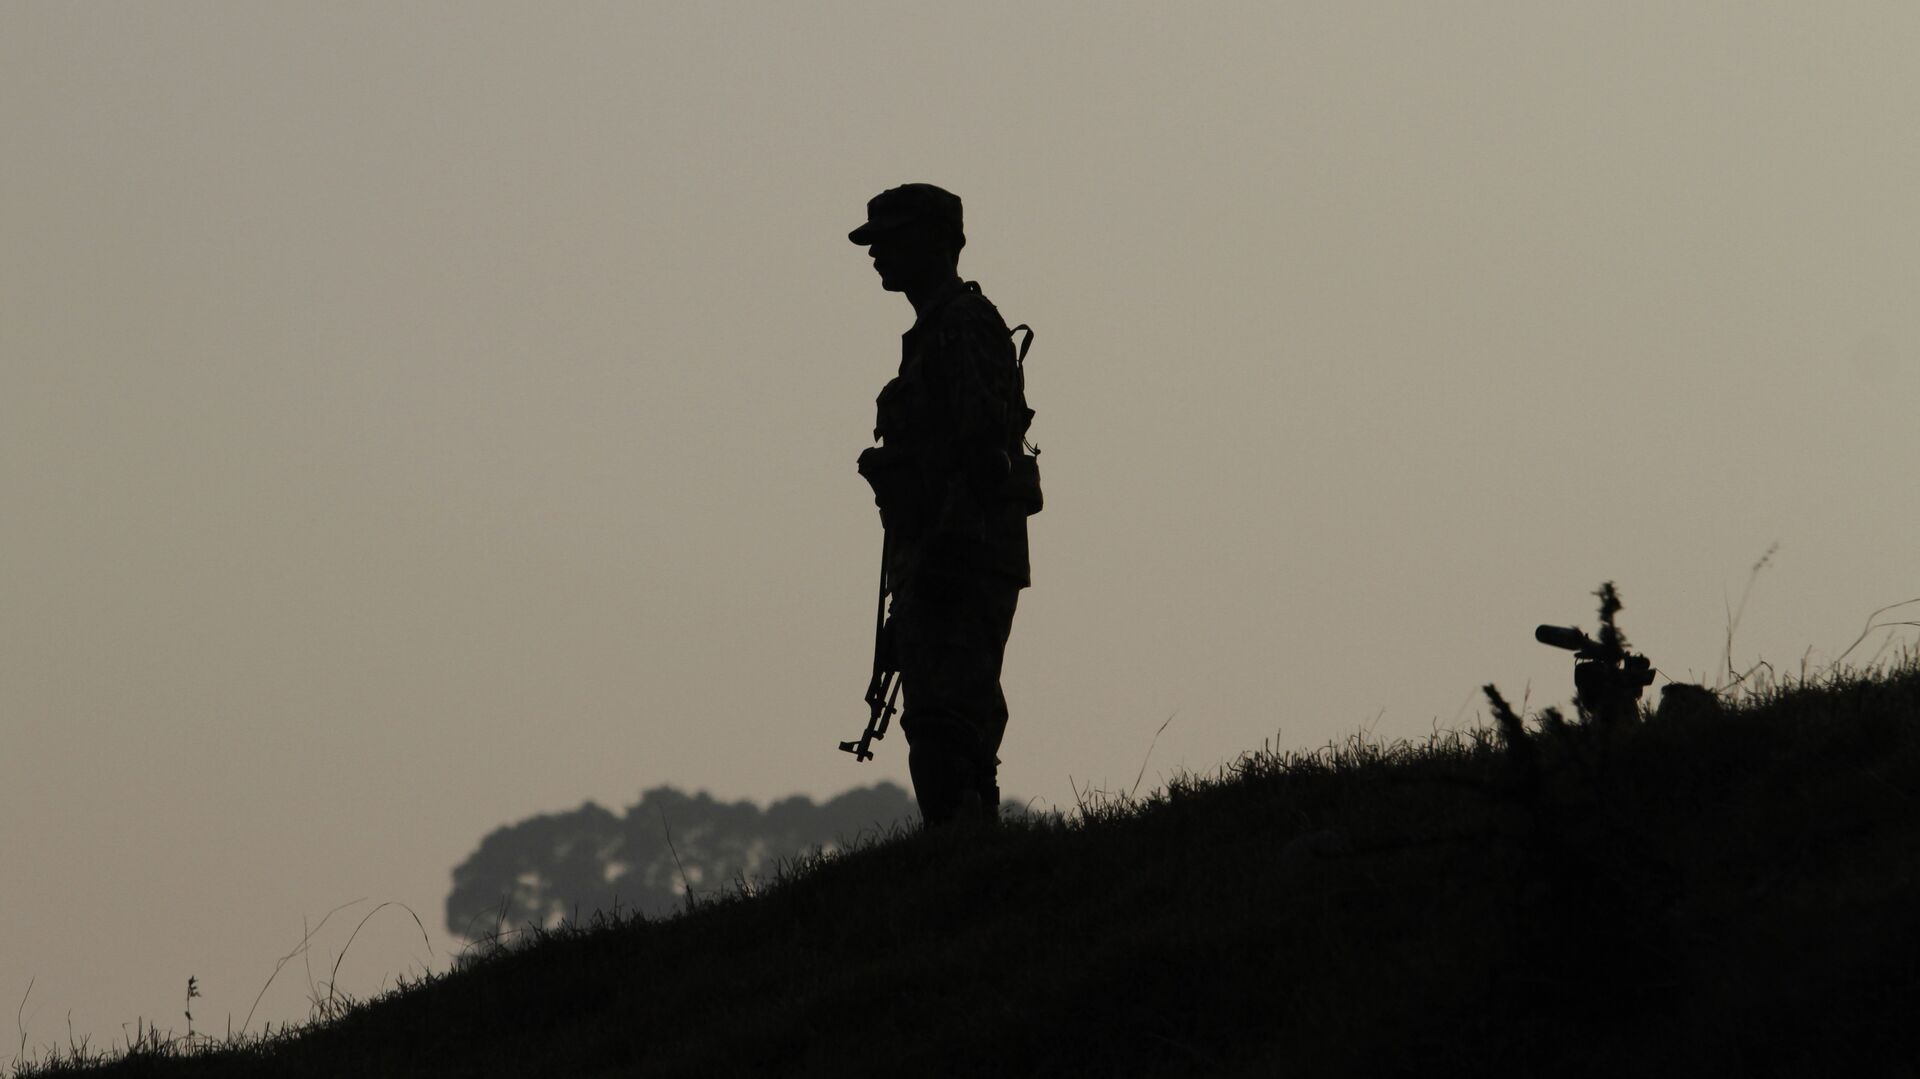 A Pakistan army soldier stands guard at hilltop post at a forward area on the Line of Control (LOC), that divides Kashmir between Pakistan and India. (File) - Sputnik Italia, 1920, 28.06.2021